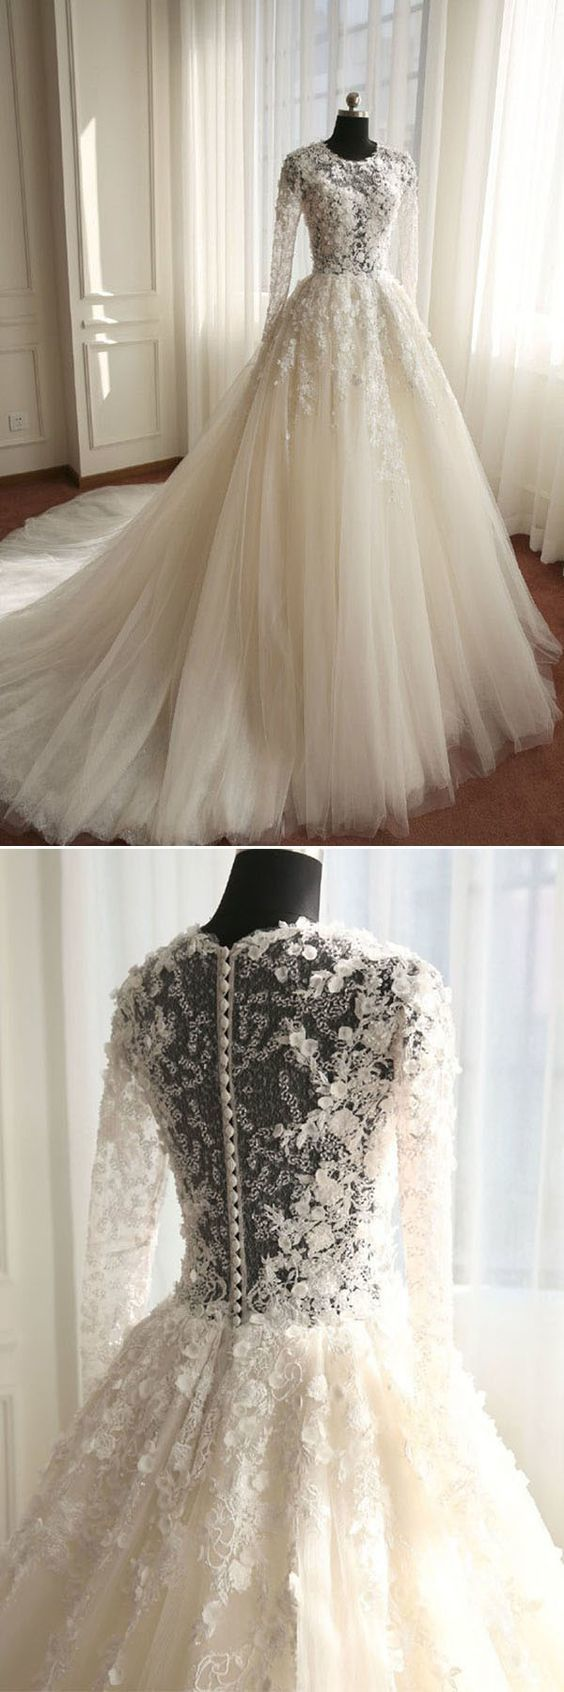 Ivory Tulle Chaple Train Wedding Dress with Long Sleeves